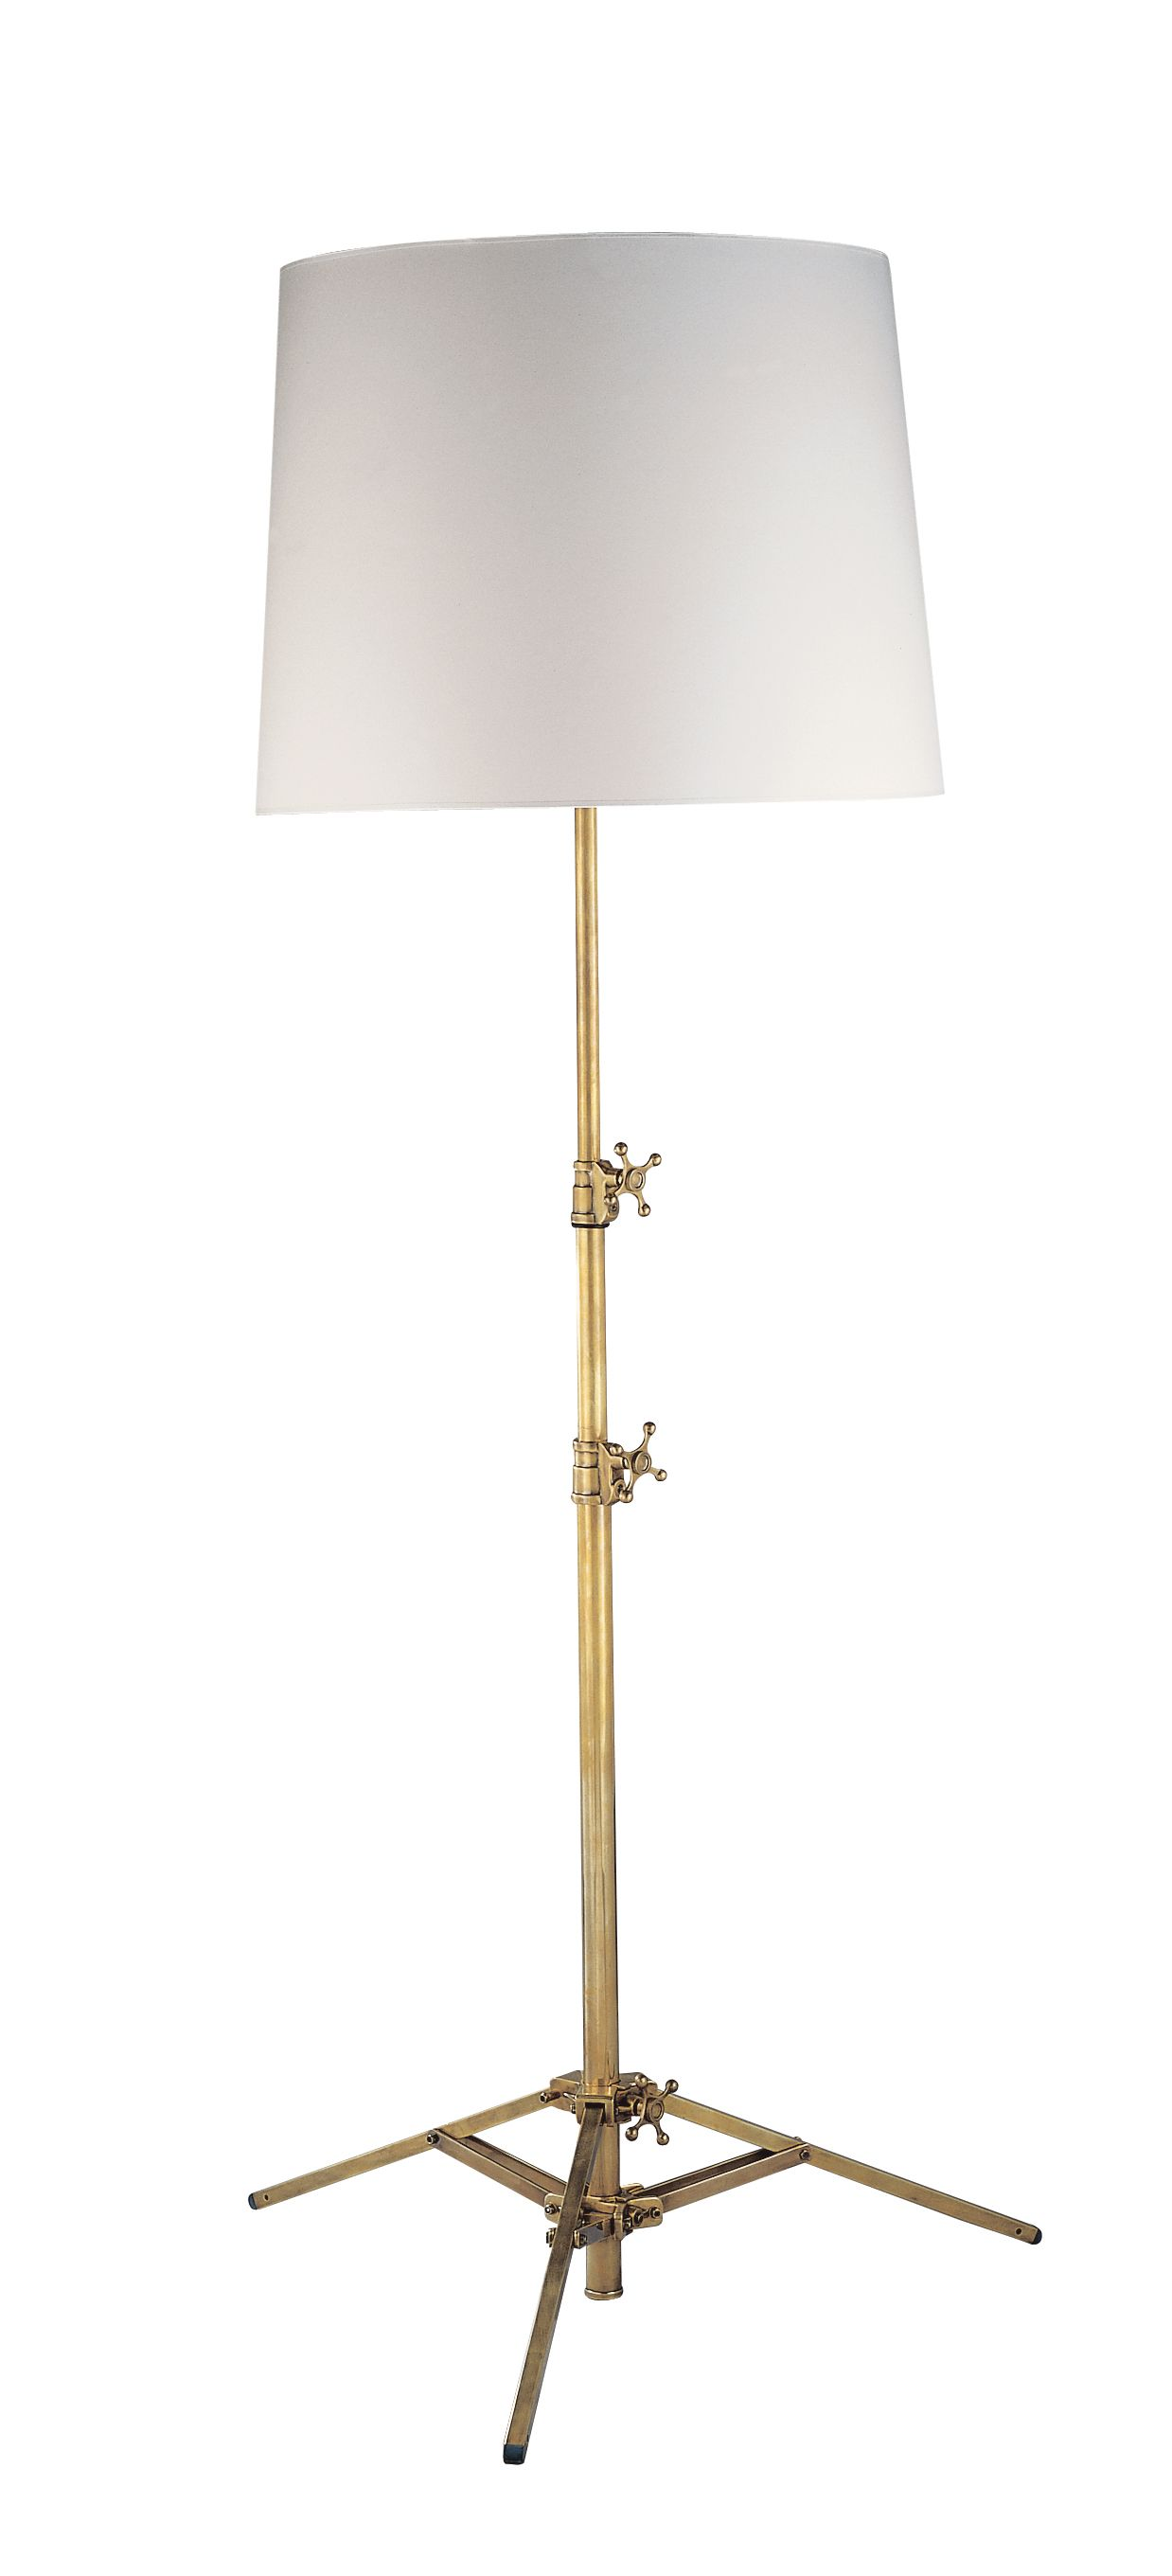 Large Shade Floor Lamp Zef Jam